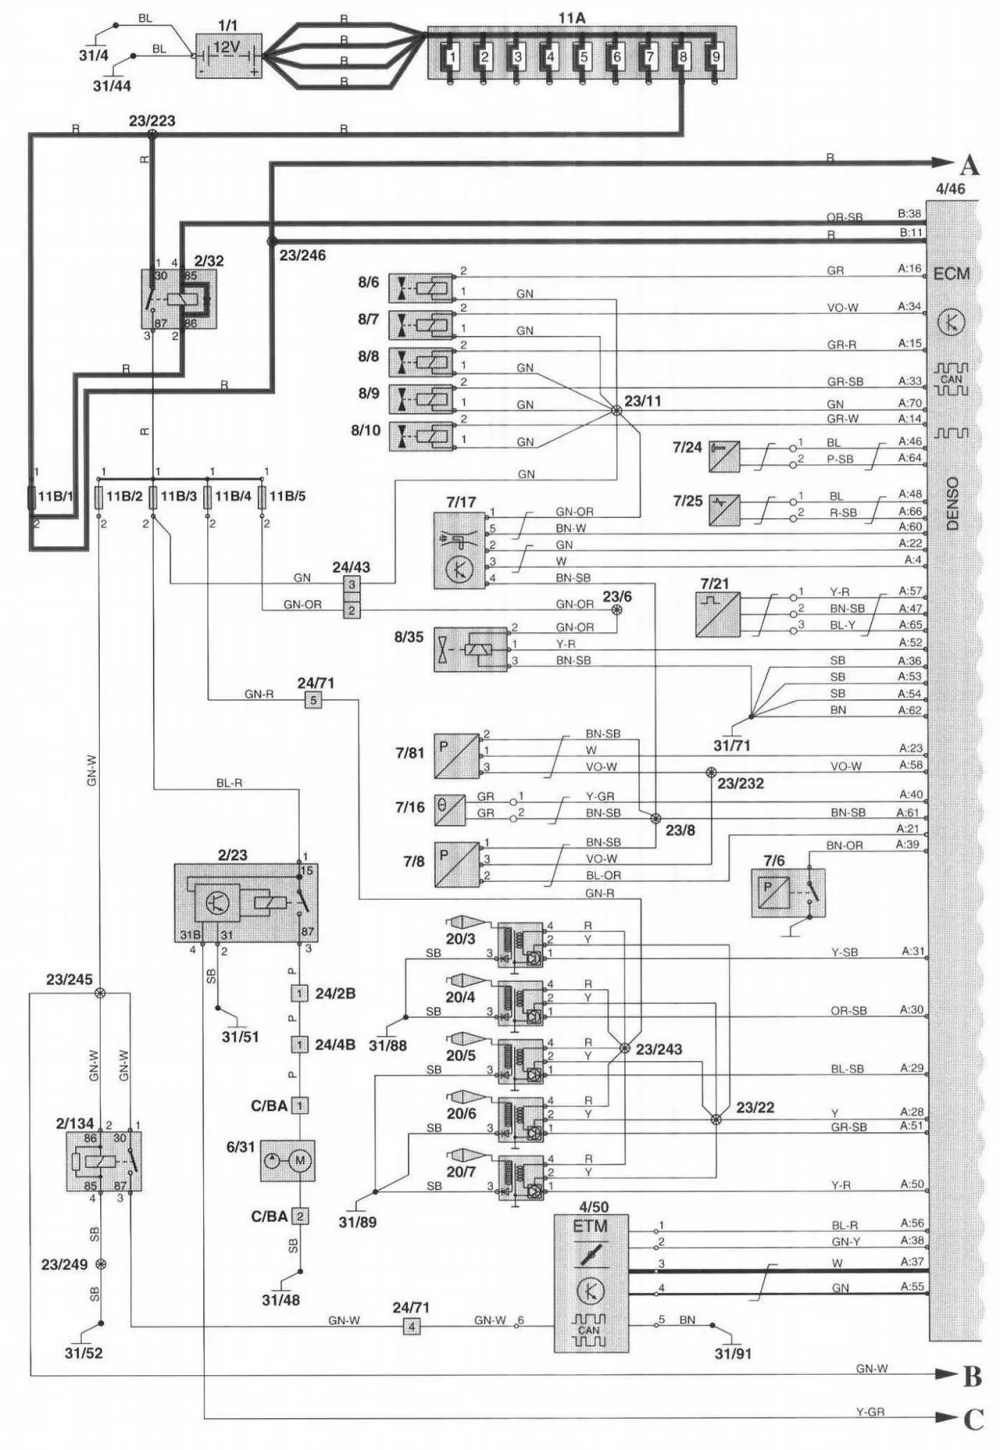 medium resolution of 2004 volvo s40 fuse box diagram wiring diagram used 2003 volvo xc90 fuse box location 2003 volvo fuse box